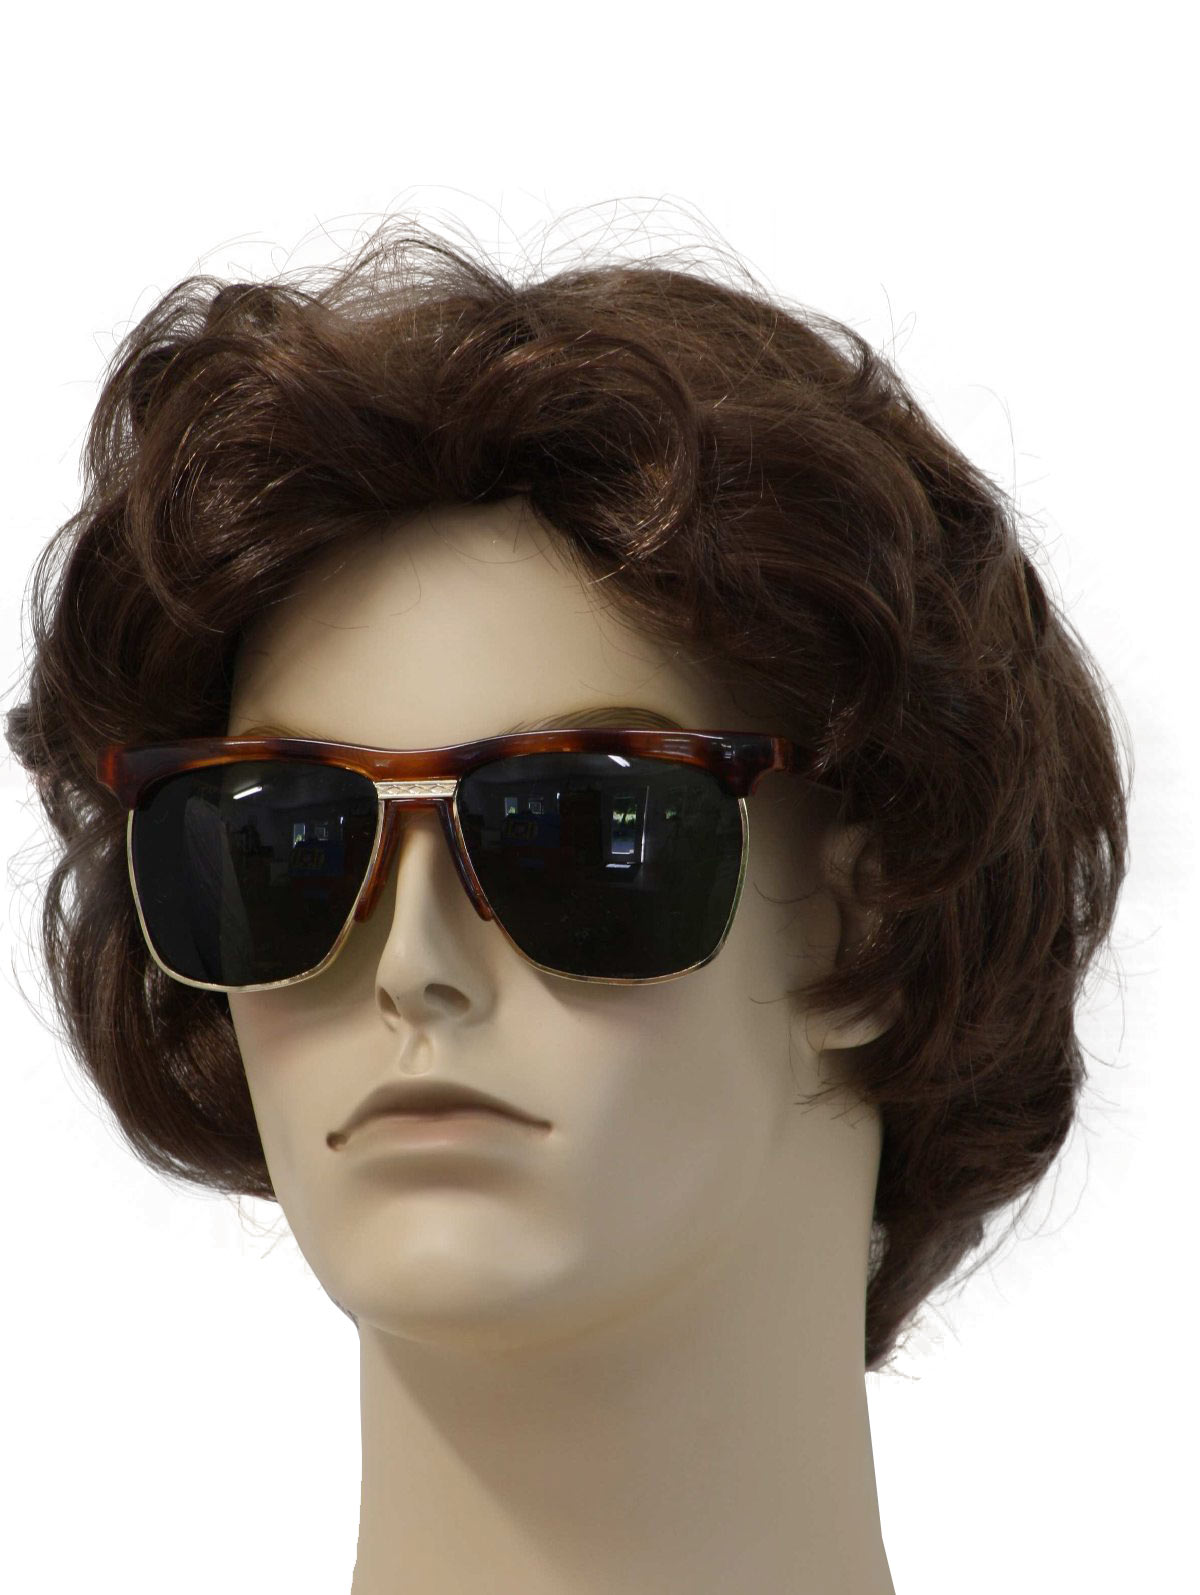 performance eyewear  Retro 90s Glasses (Taiwan) : 90s -Taiwan- Mens tortoise shell ...